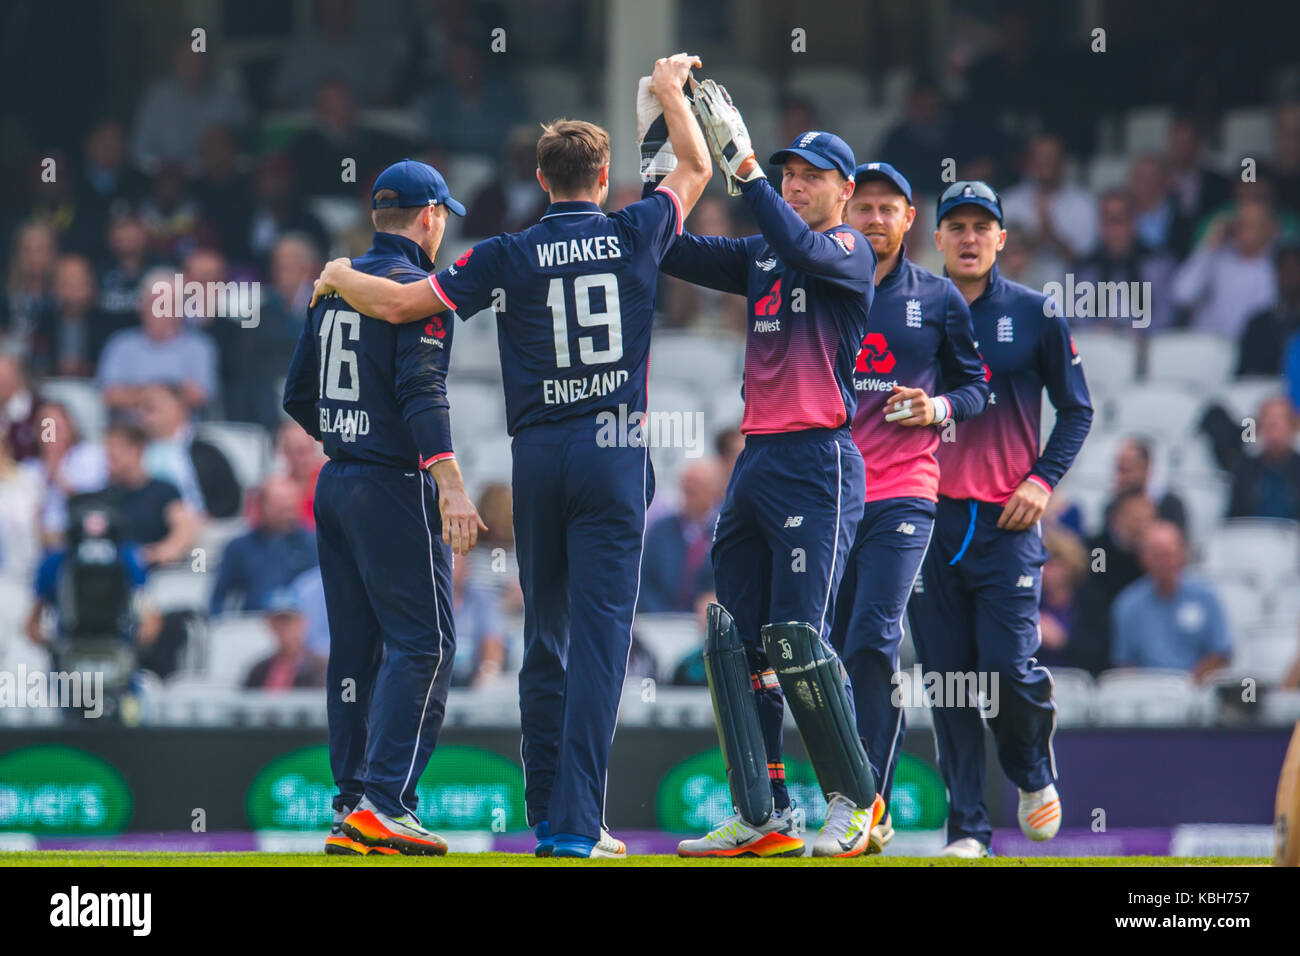 London,UK. 27 September 2017. England celebrate as Woakes gets his second wicket after Kyle Hope is caught by keeper - Stock Image